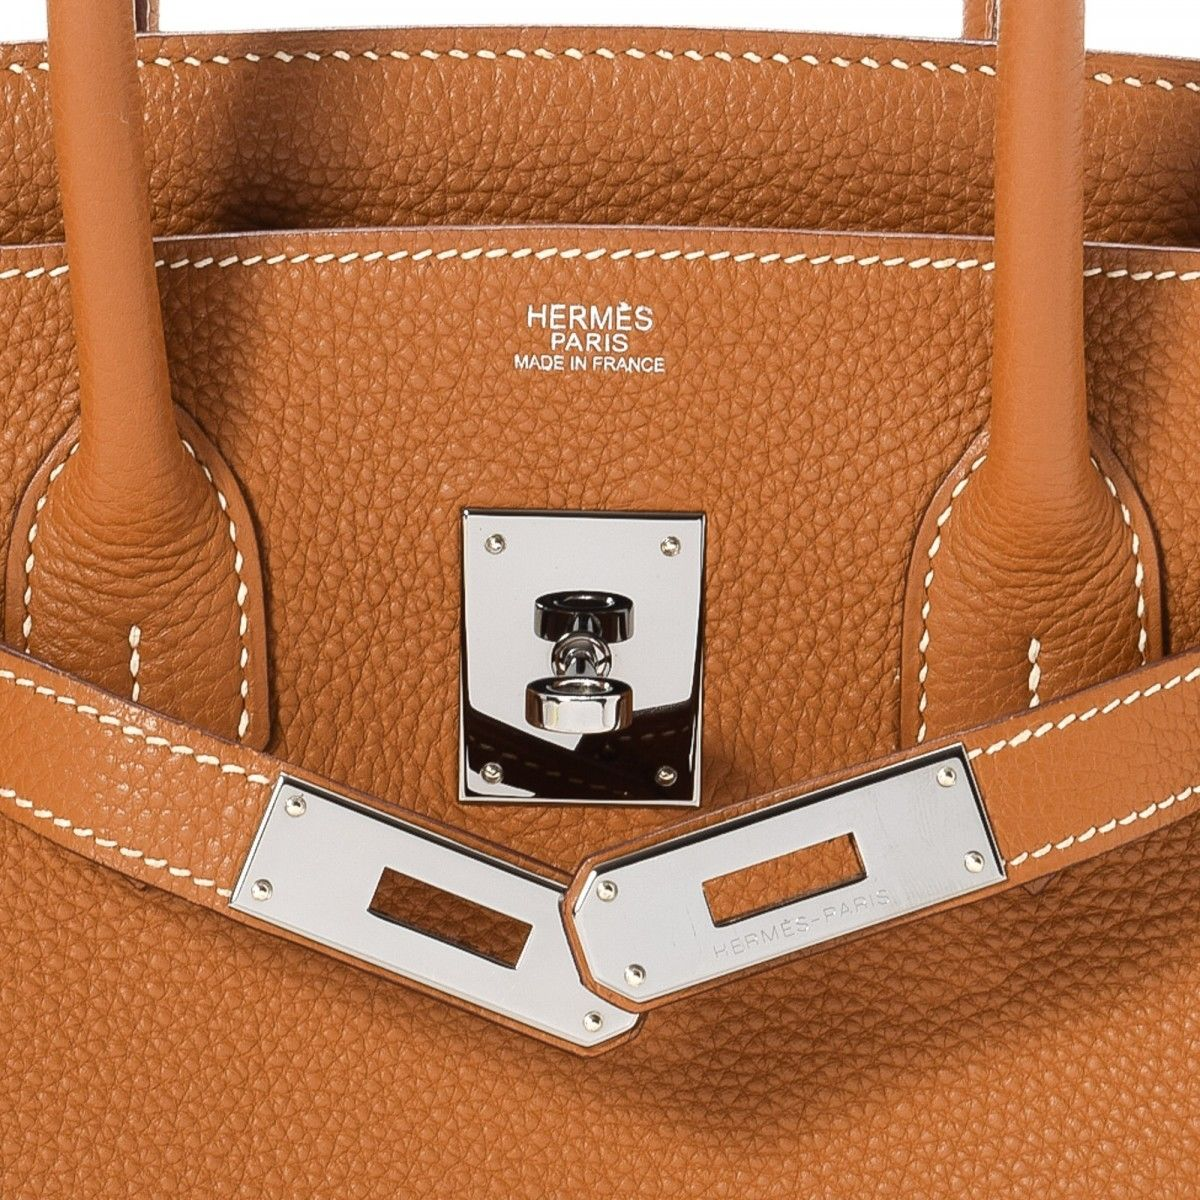 f26ba39ec0 Hermès Birkin 35 Gold Togo (Ruthenium Hardware). LXRandCo guarantees this  is an authentic vintage Hermès Birkin 35 Gold Ruthenium Hardware handbag.